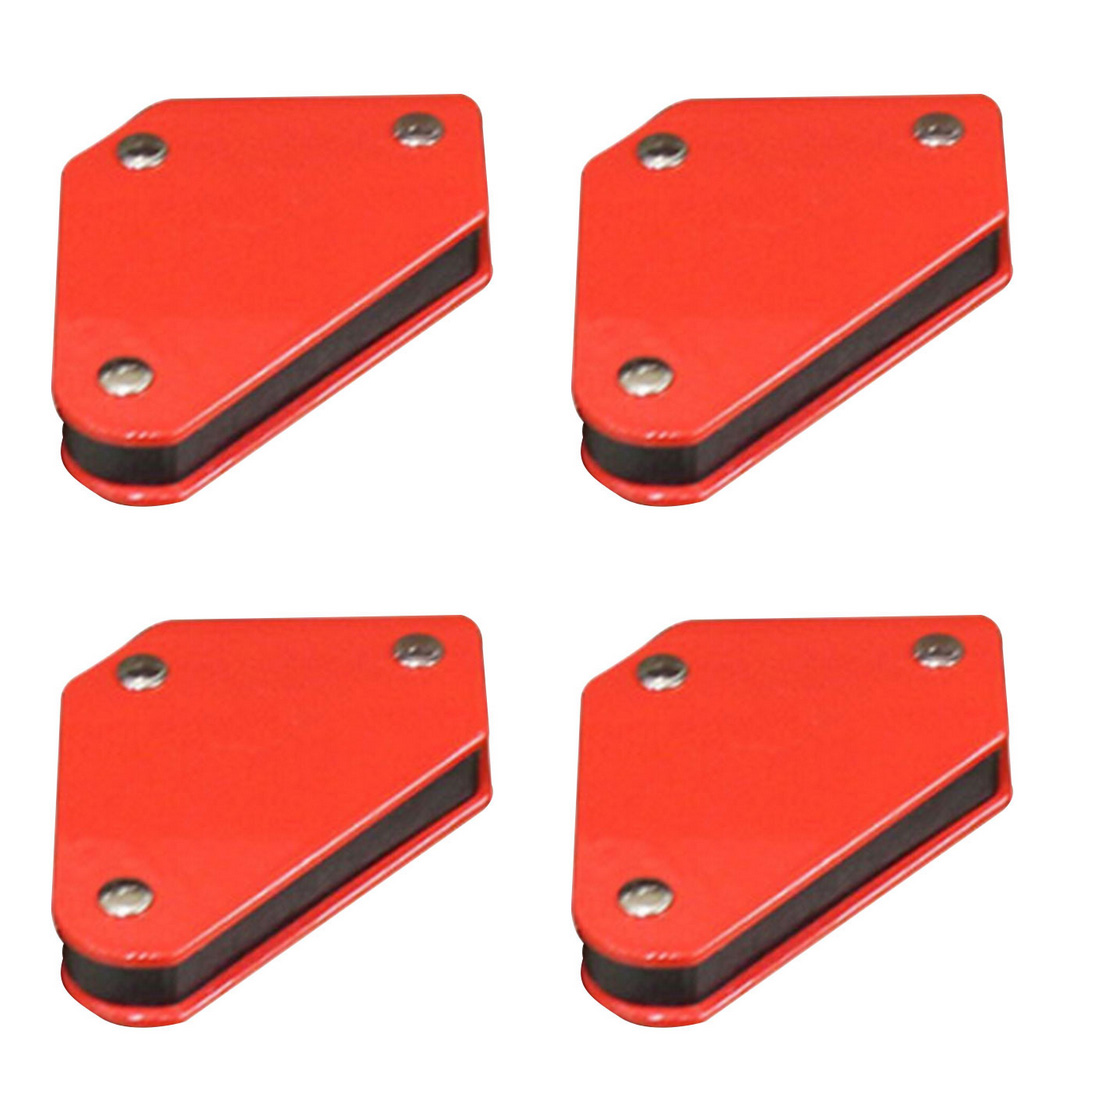 Triangular Welding Positioner 9LB Magnetic Fixed Angle Soldering Locator Tools 4 Pcs/set Without Switch Welding Accessories